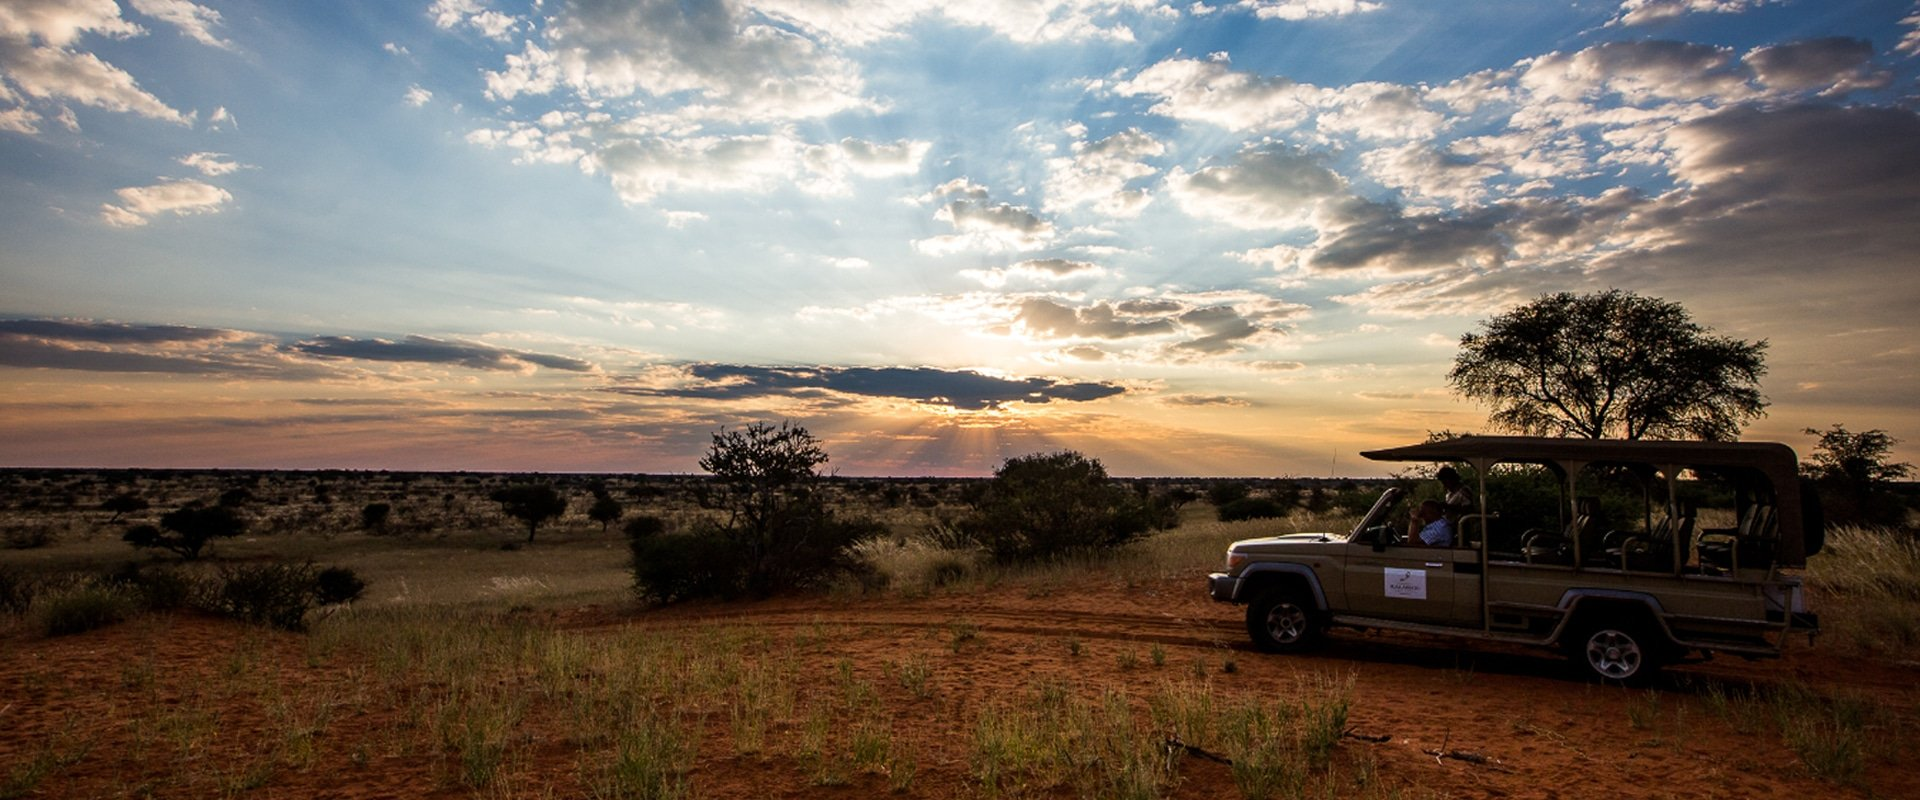 Take in the sites of the Kalahari Dunes at sunset